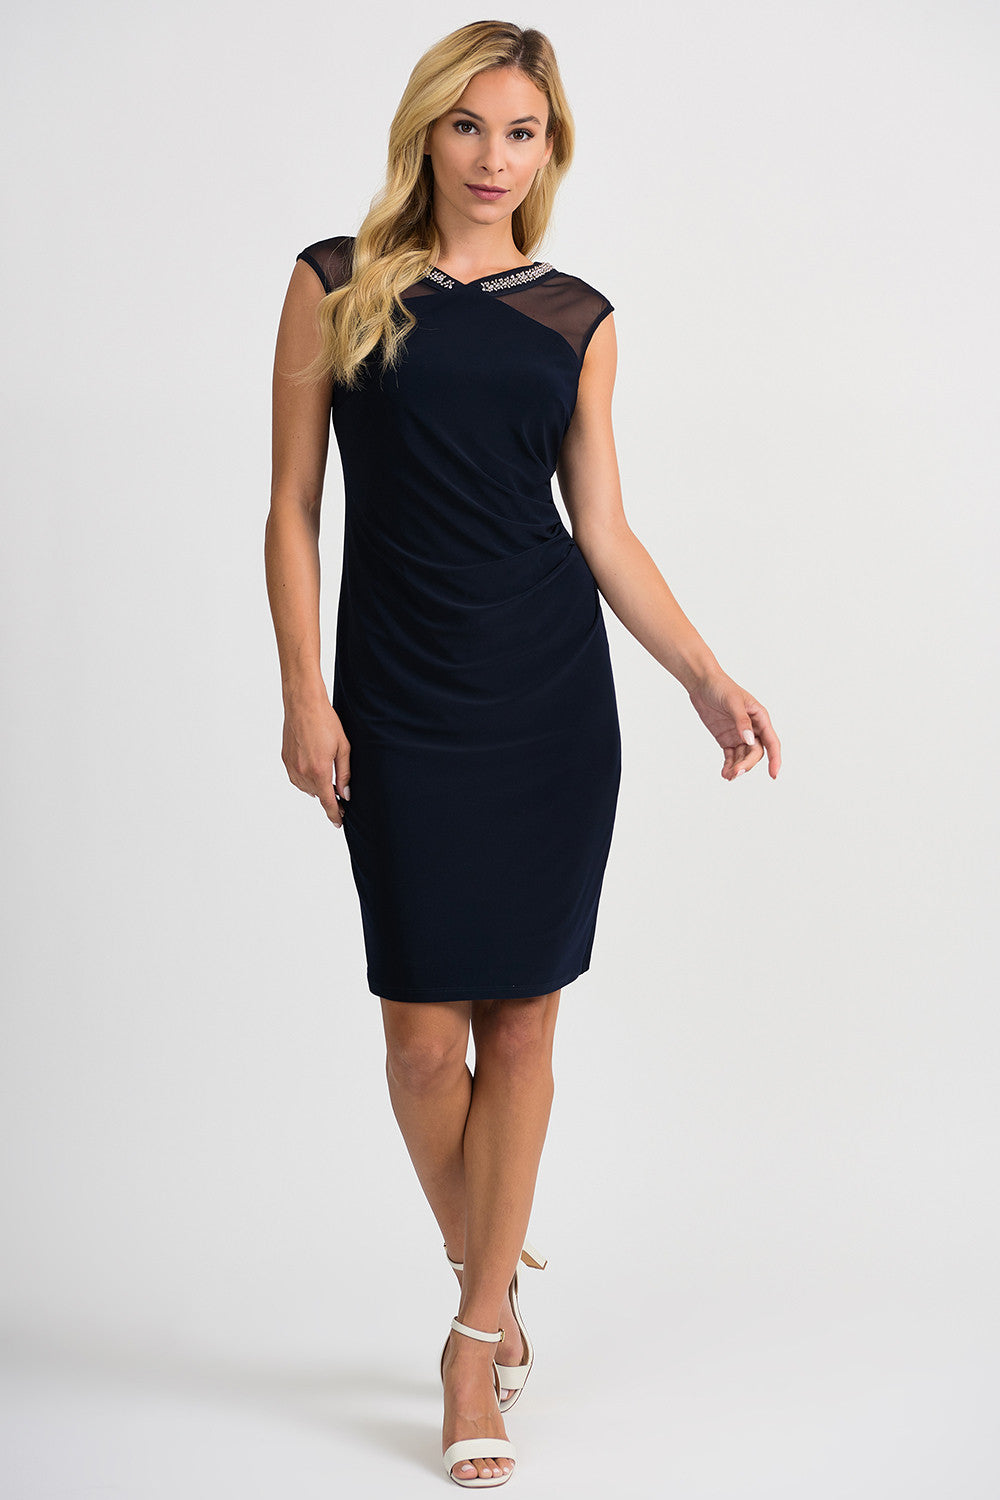 Joseph Ribkoff 201004 Navy Cocktail Dress